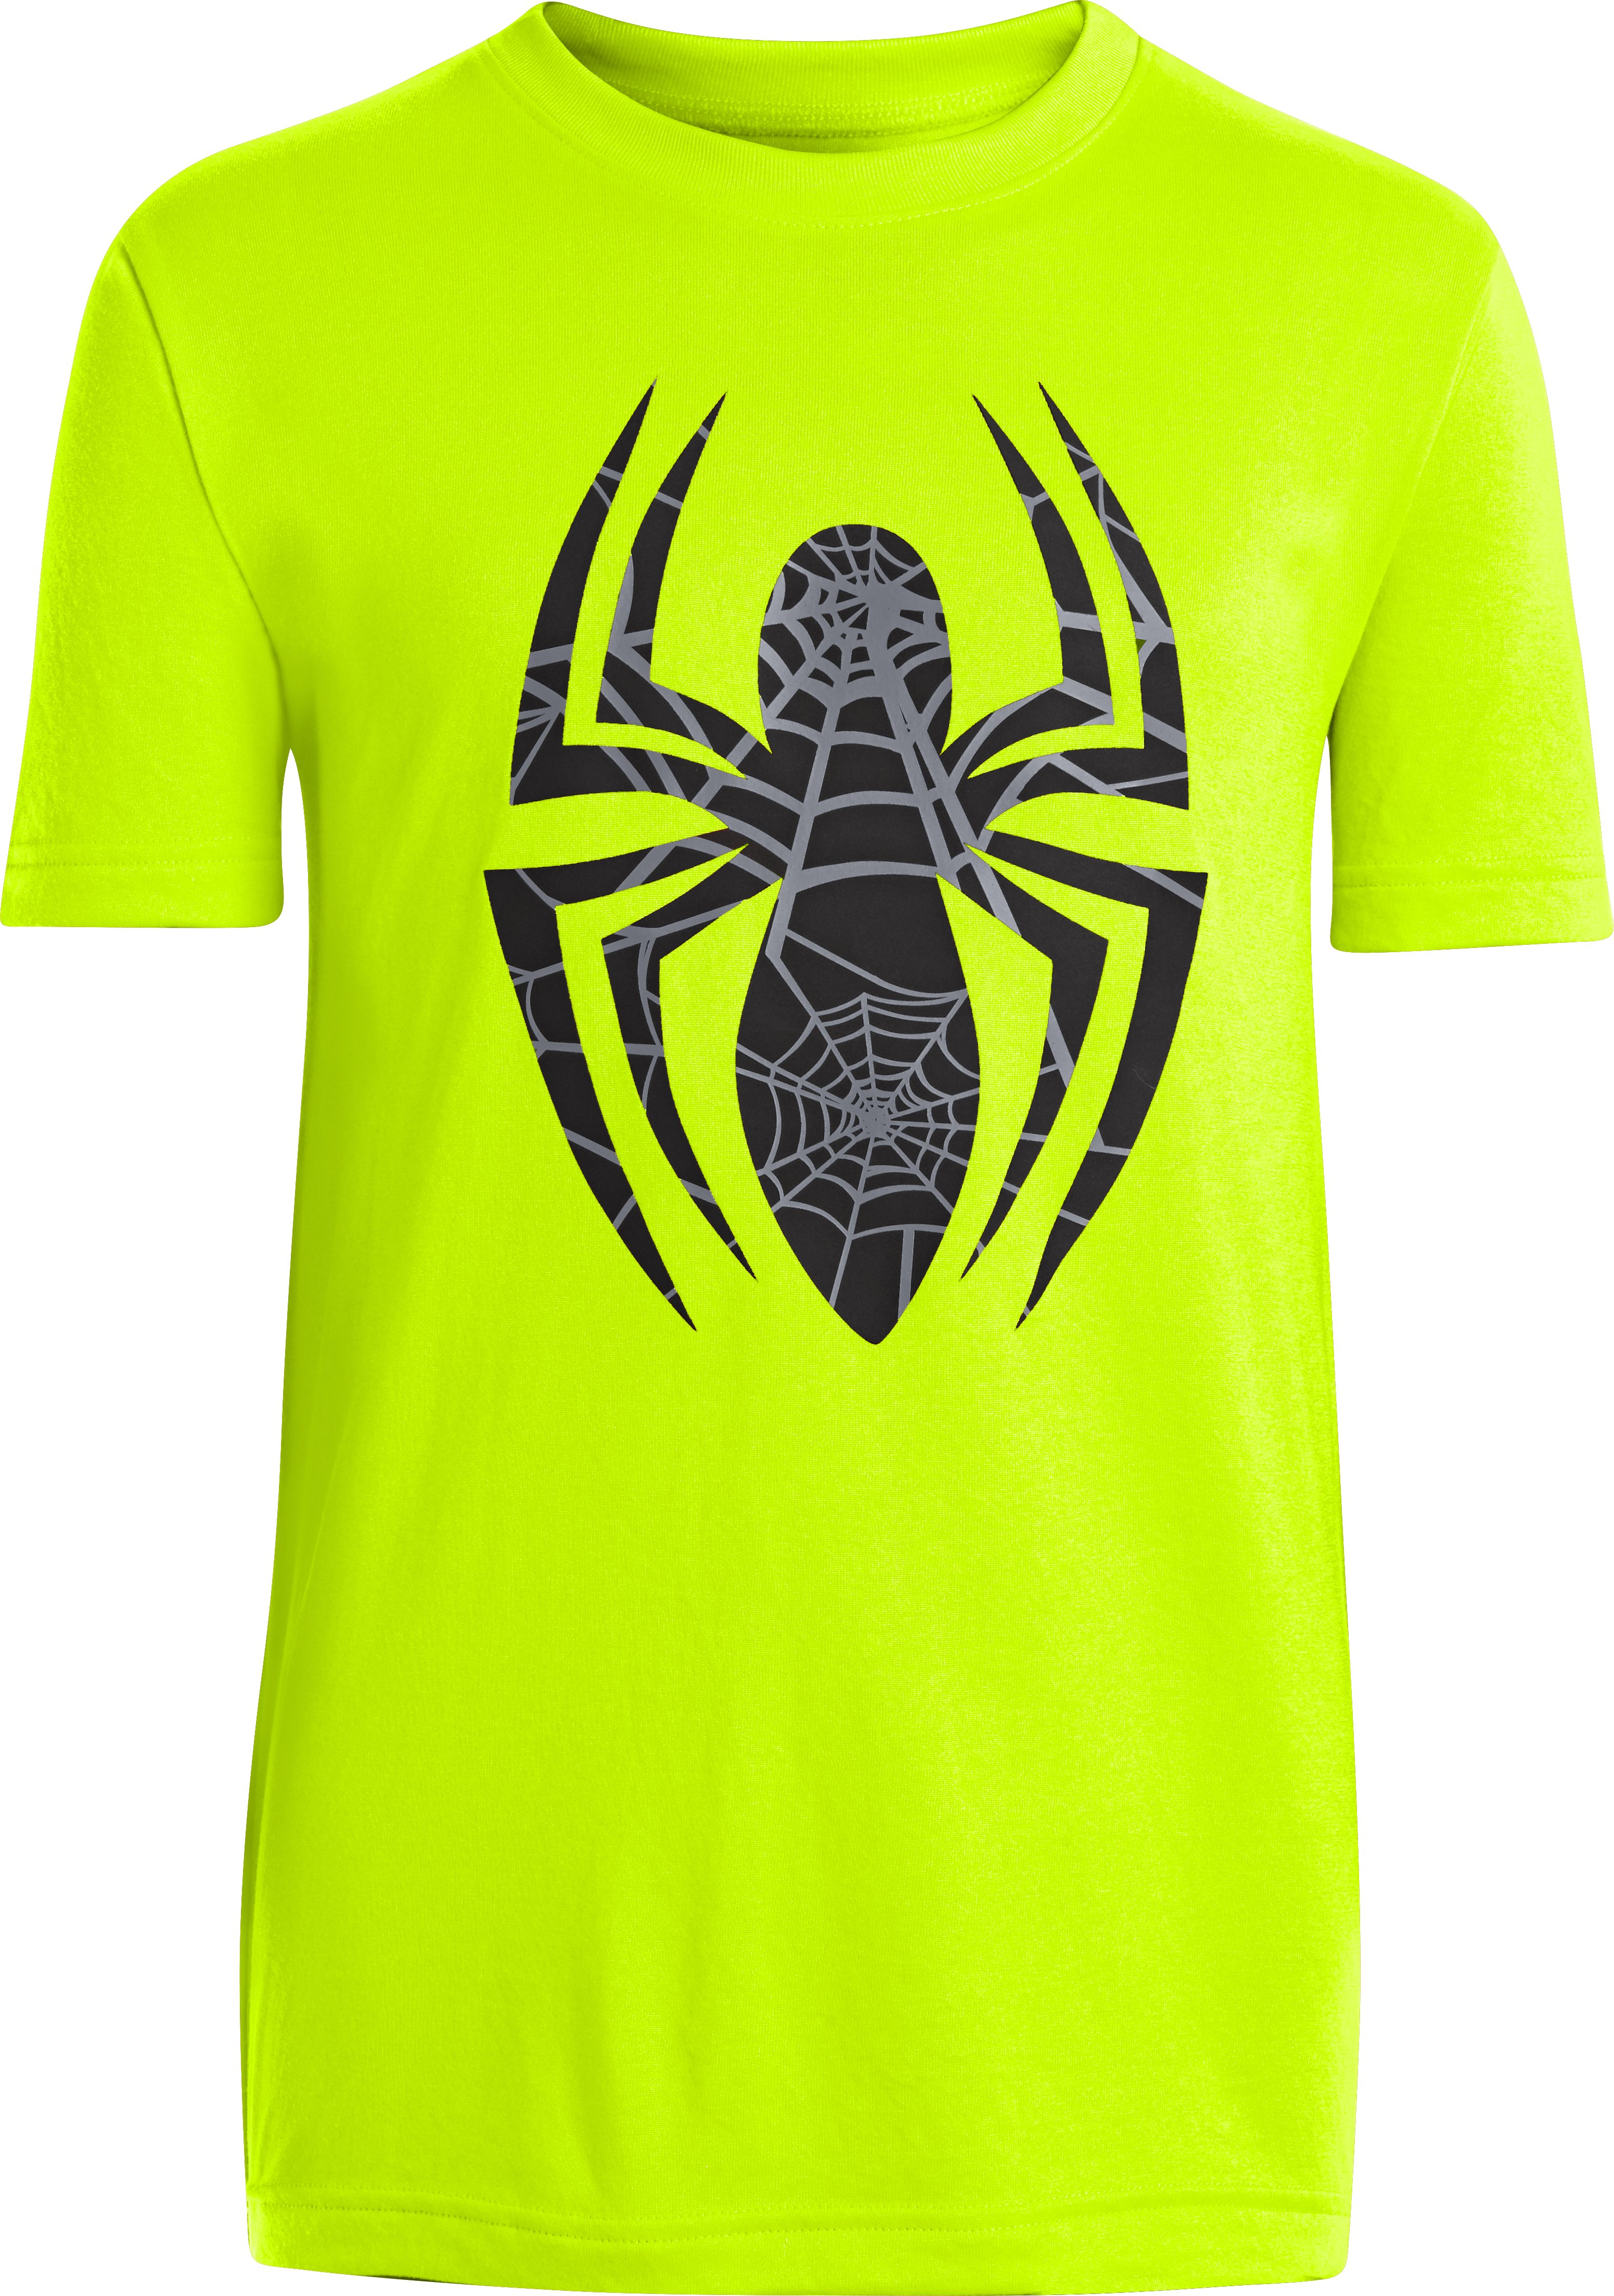 Boys' Under Armour® Alter Ego Spider-Man Logo T-Shirt, High-Vis Yellow